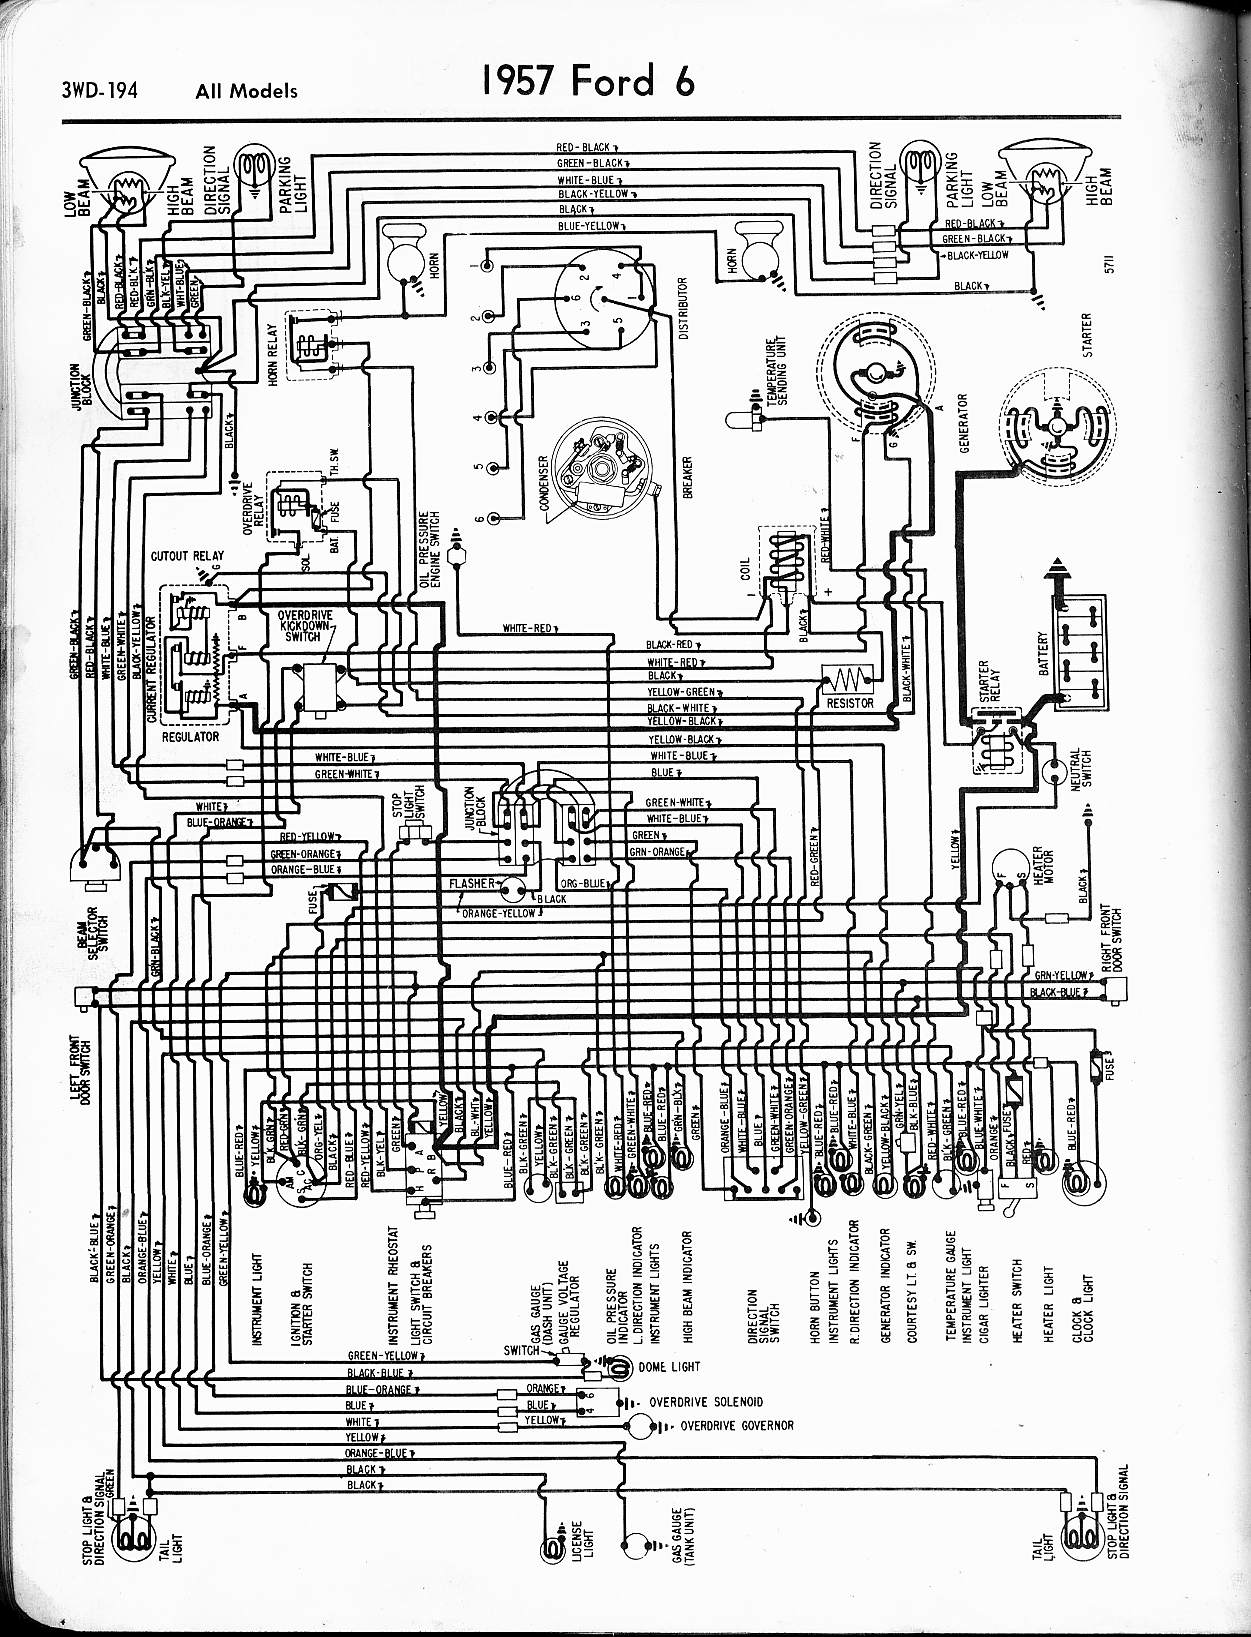 Ford Diagrams 1987 F 150 Headlight Wiring Diagram 57 Drawing A